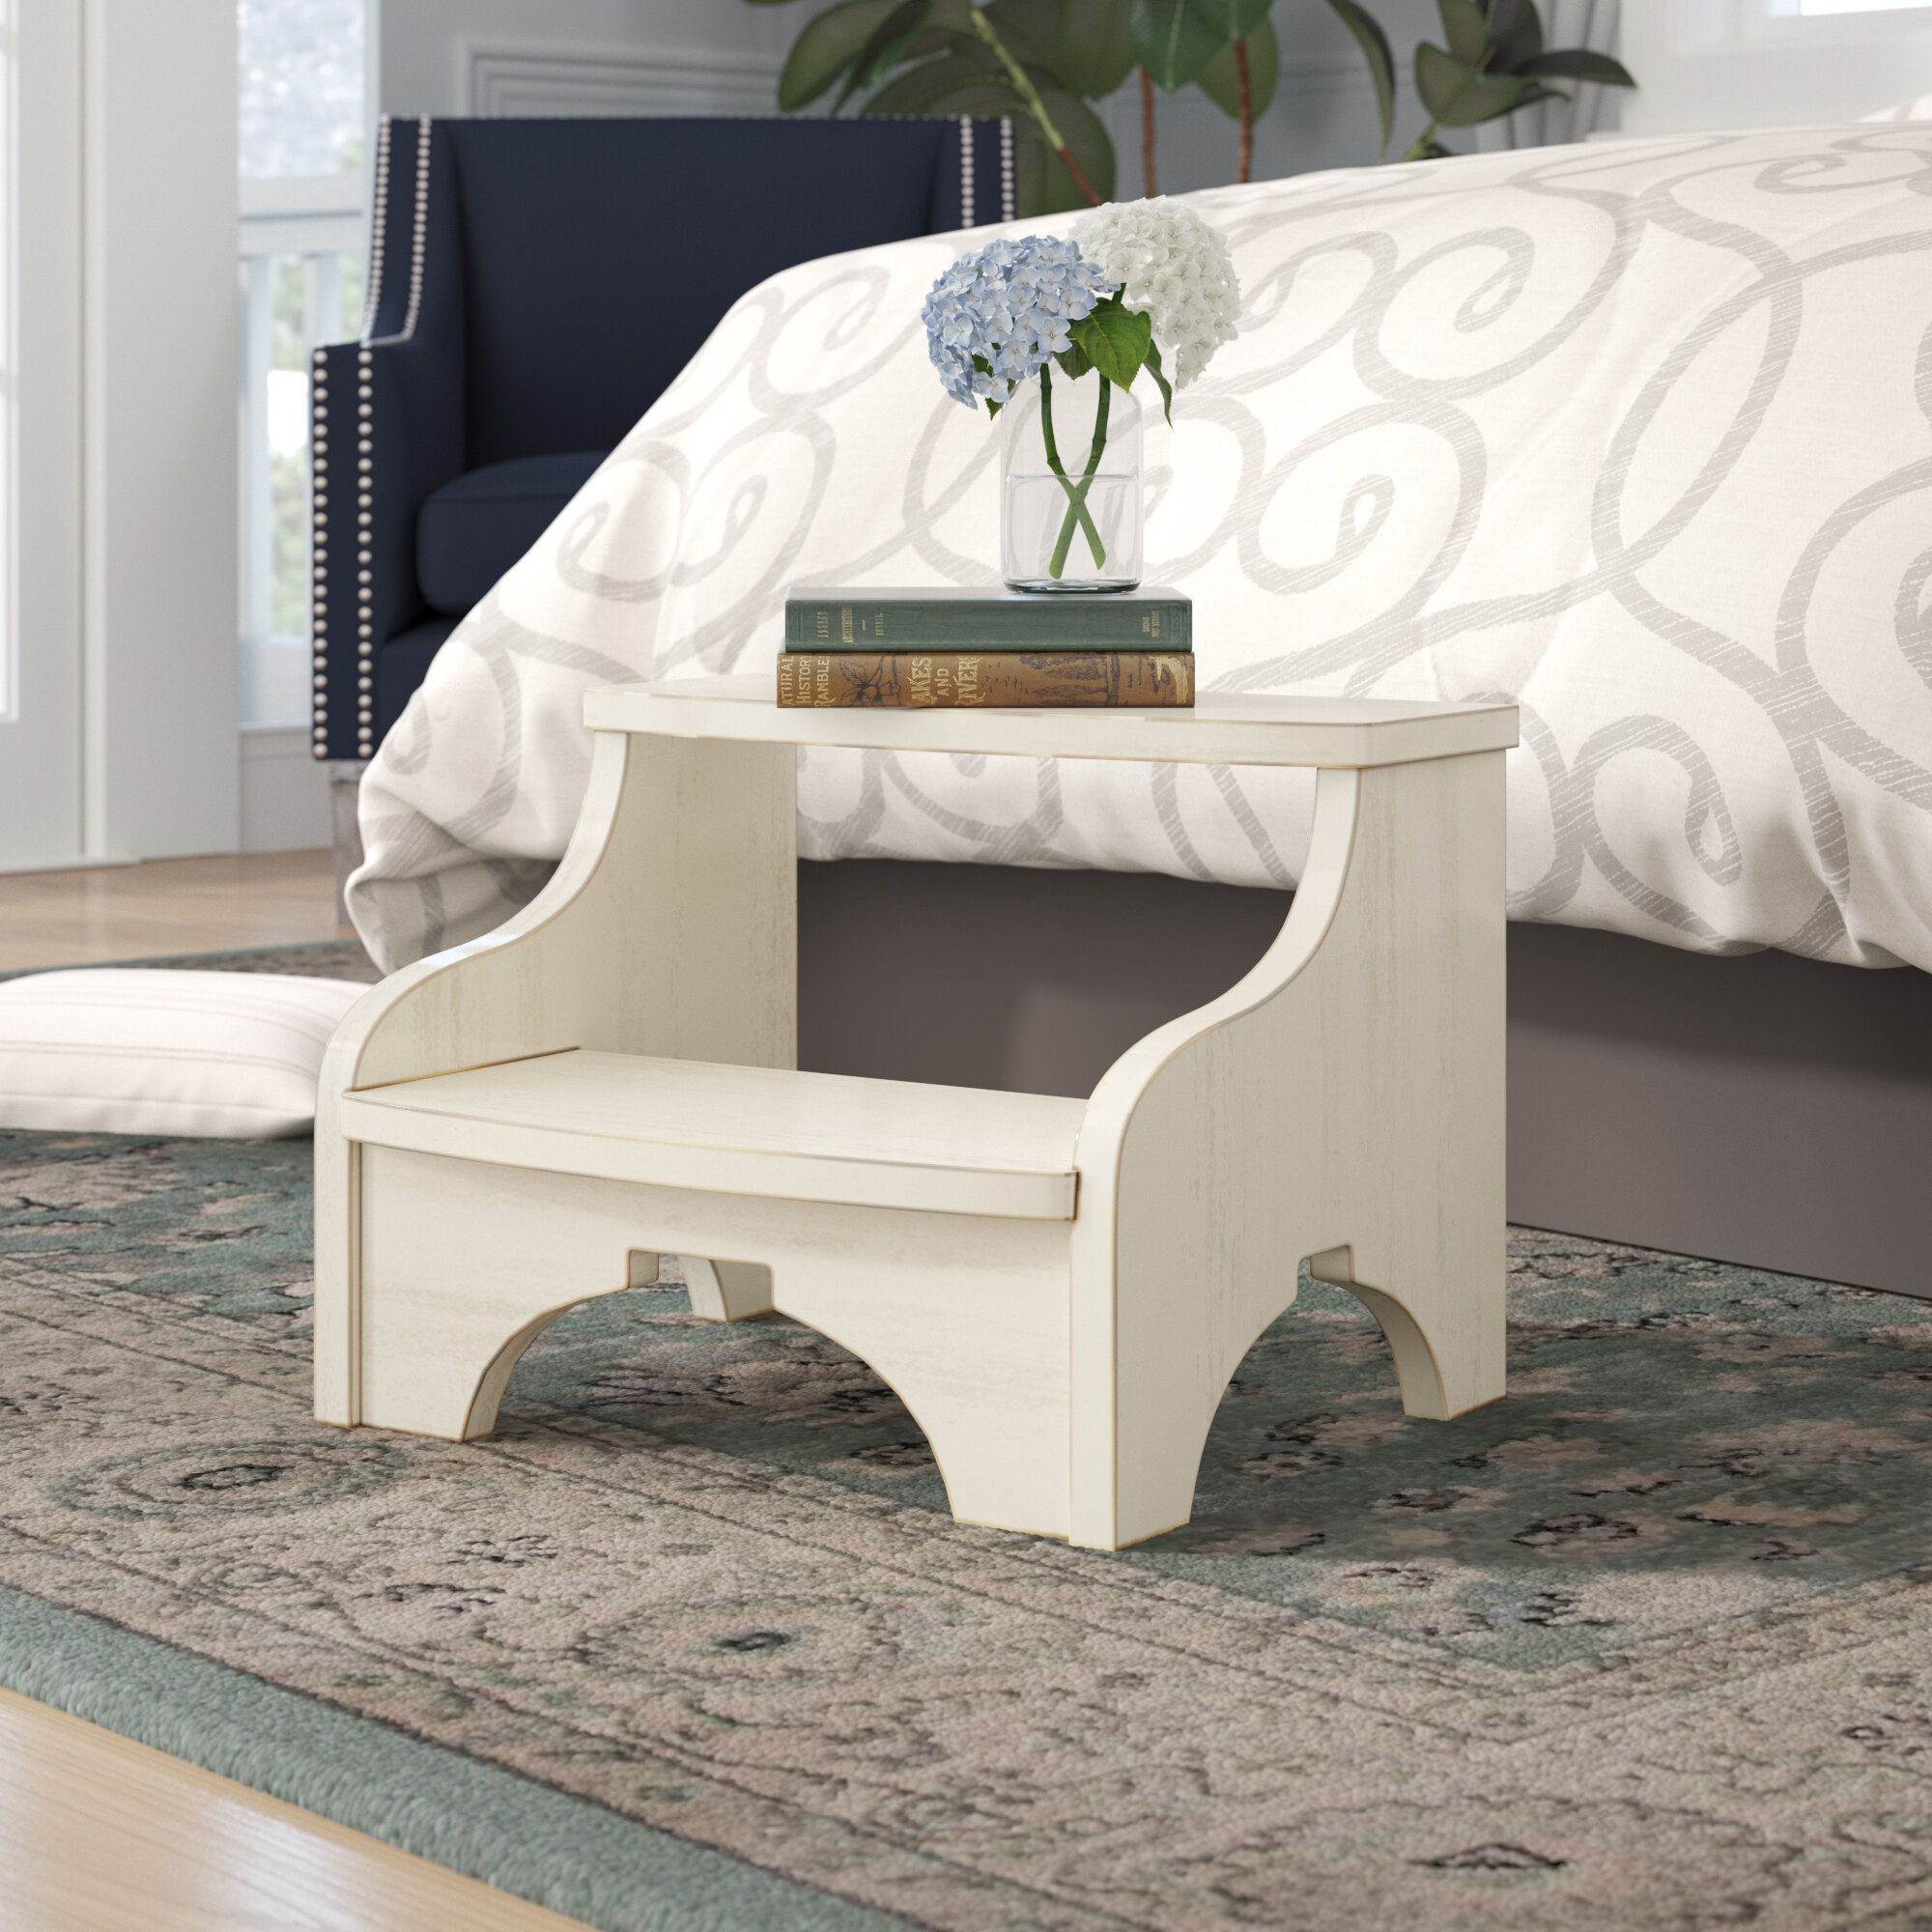 Excellent Rosehill 2 Step Wood Step Stool Creativecarmelina Interior Chair Design Creativecarmelinacom